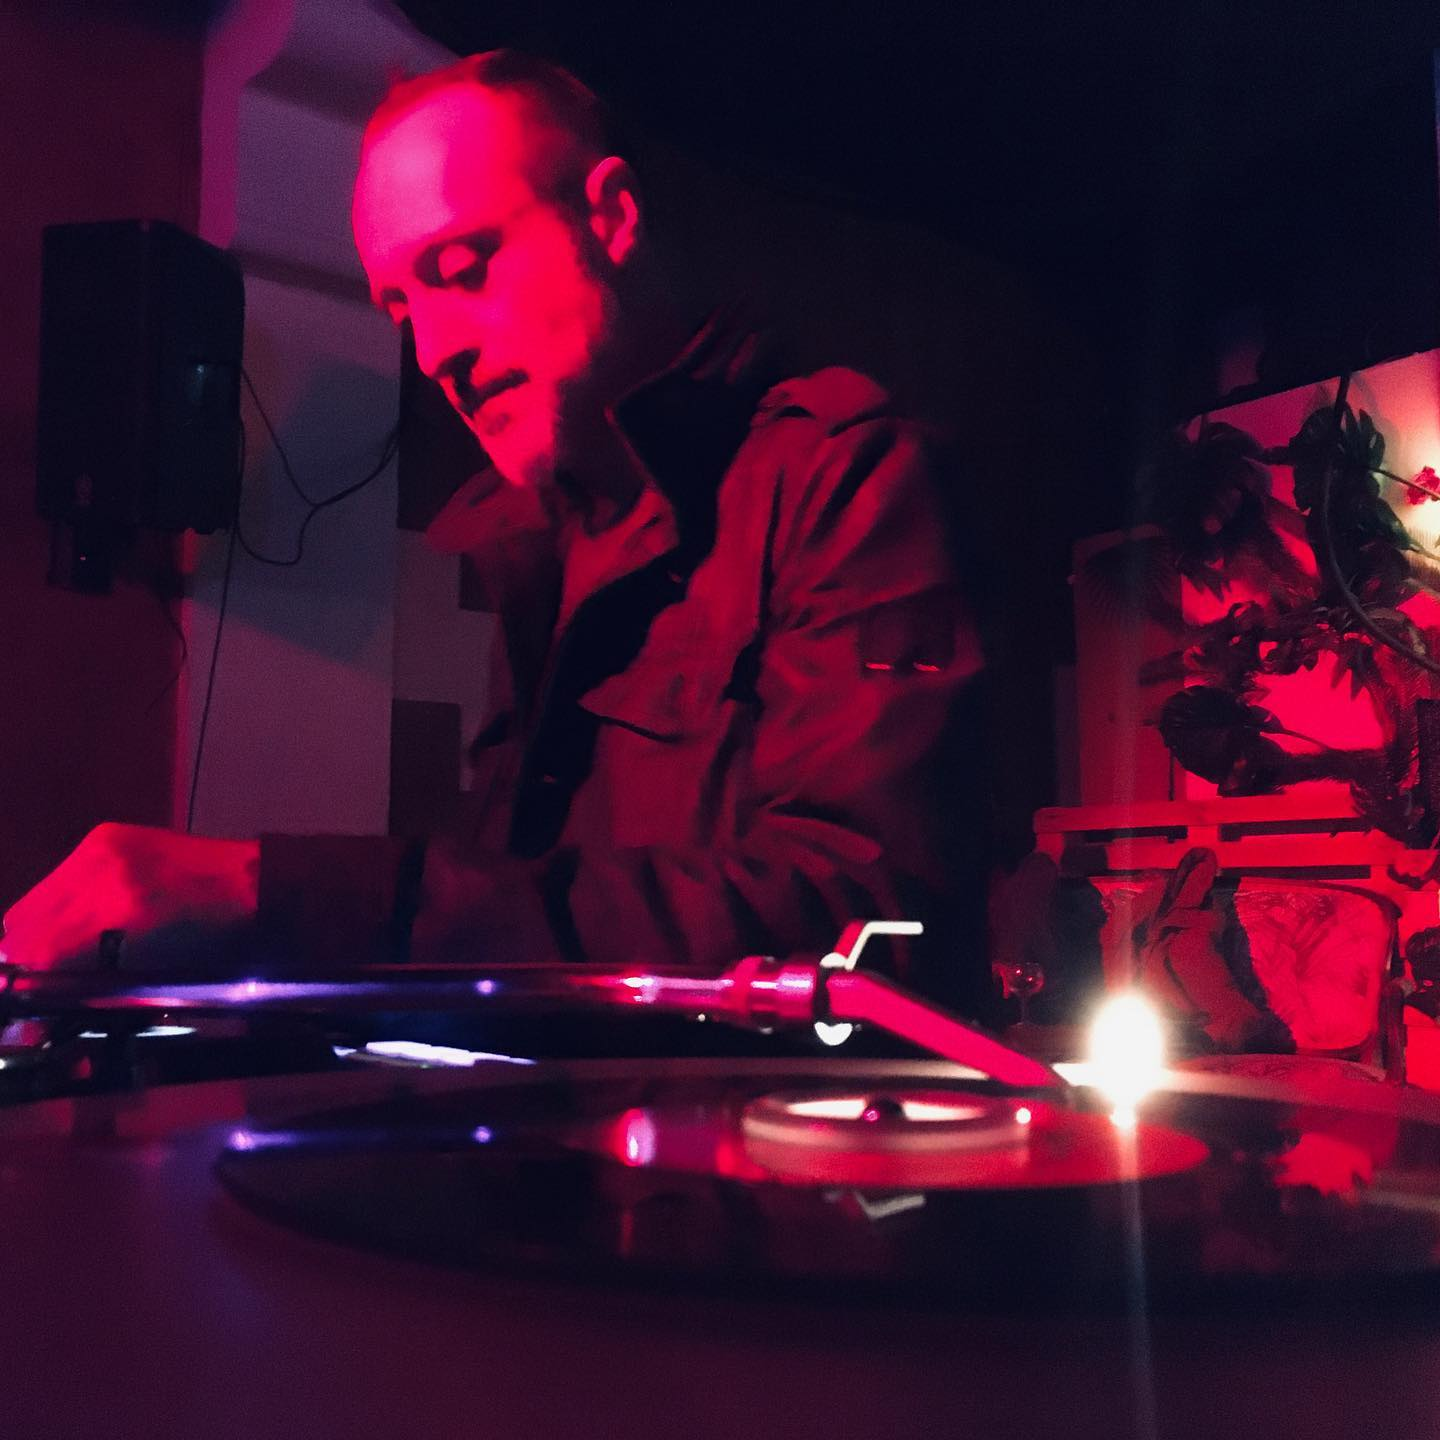 Lord funk in the mix